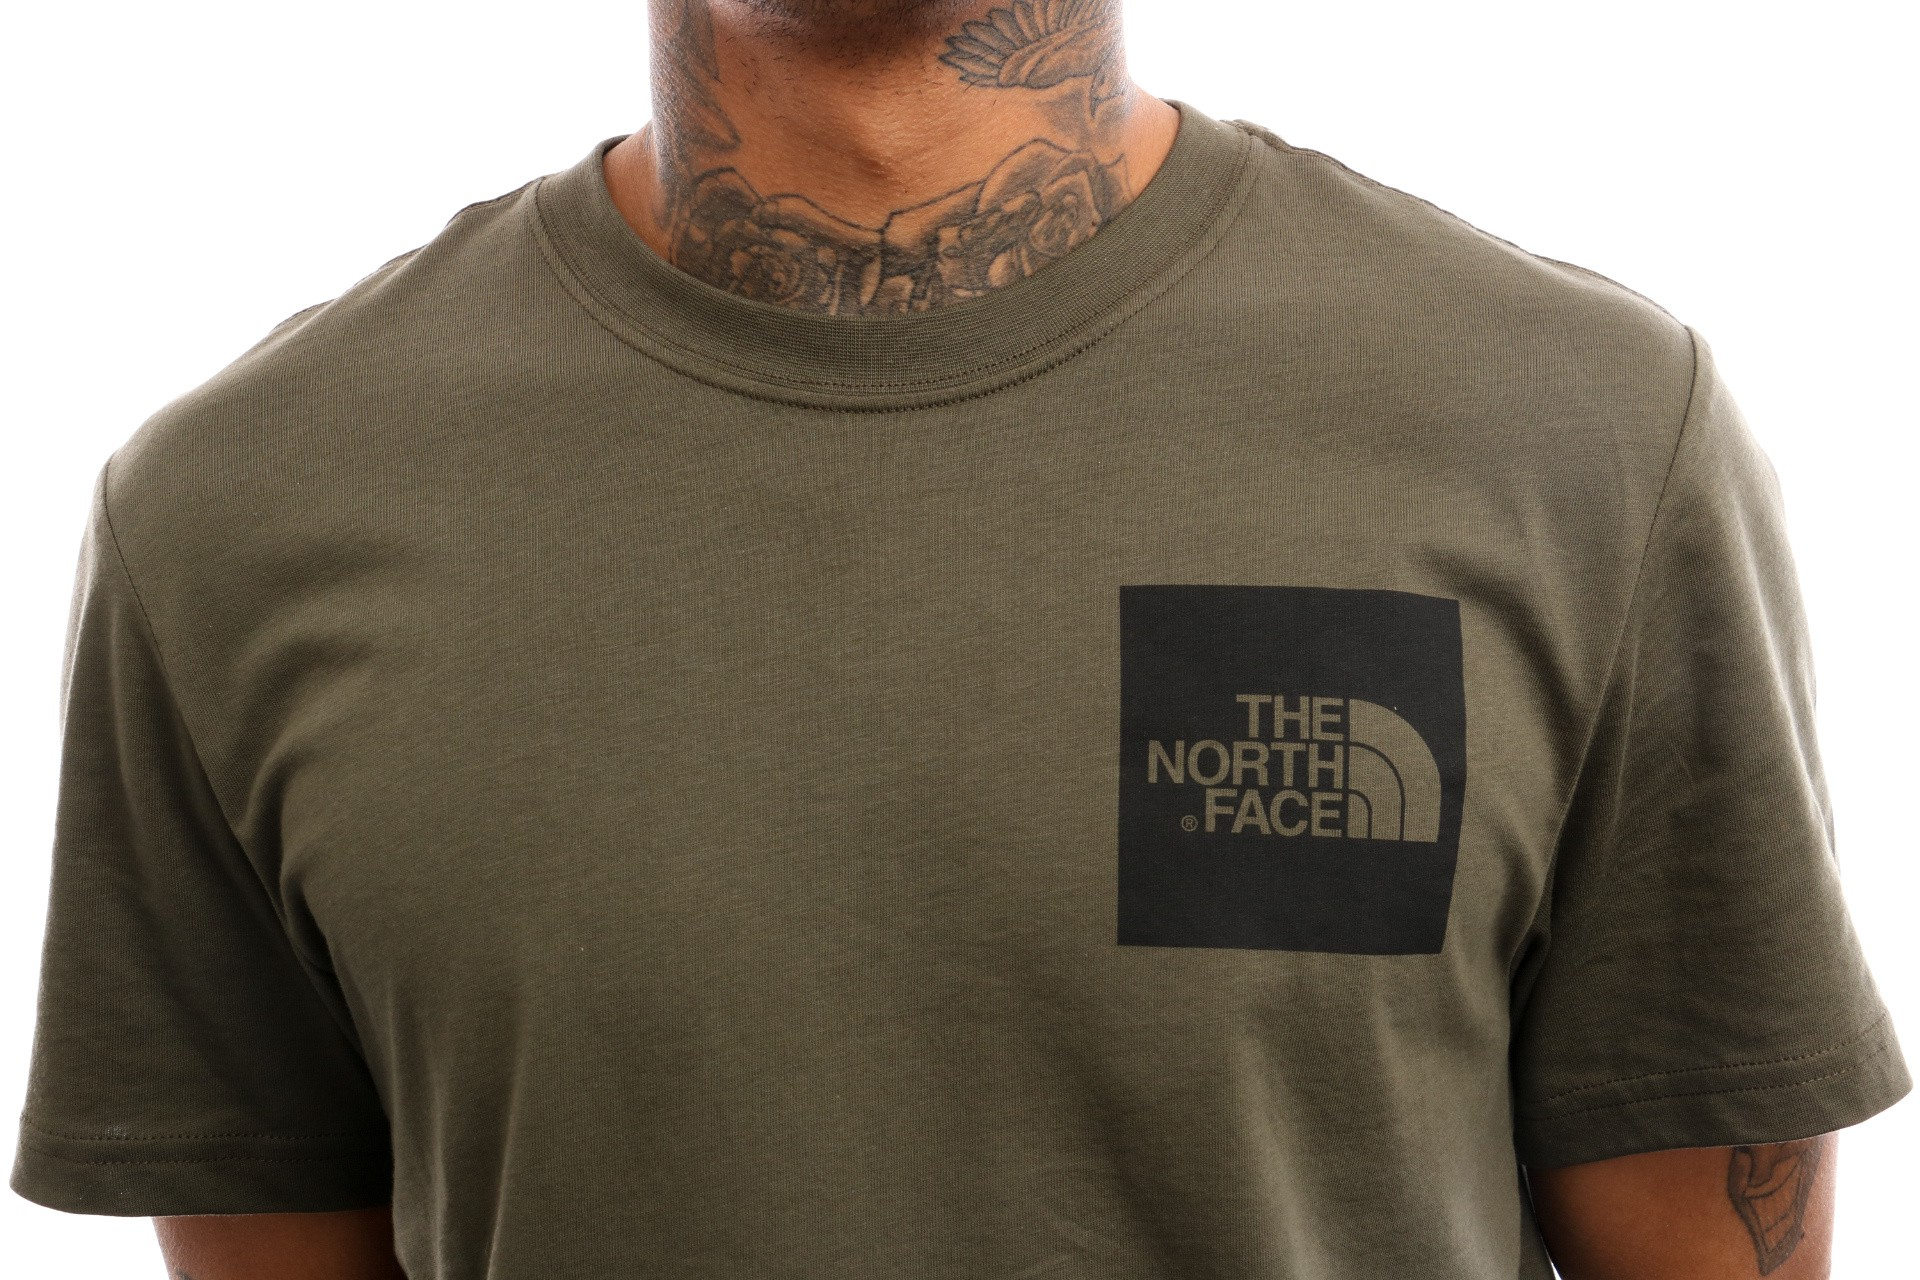 f15dc7cb44056f Afbeelding van The North Face M S S Fine Tee T0Ceq5 T Shirt New Taupe Green